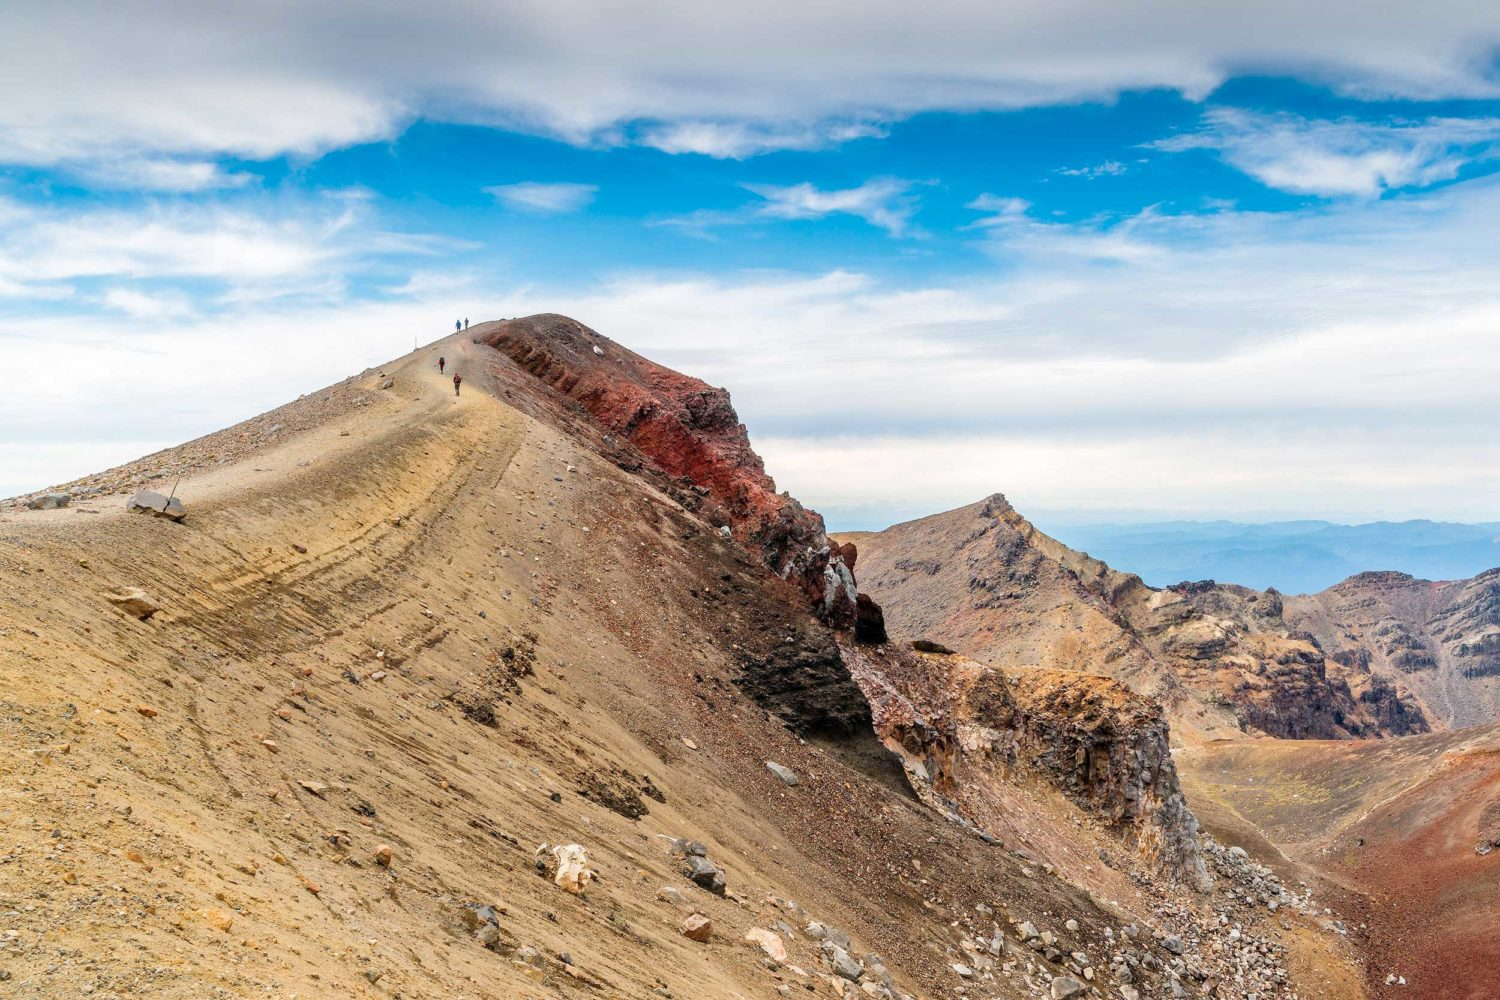 New Zealand's Greatest Day Hike: The Tongariro Alpine Crossing